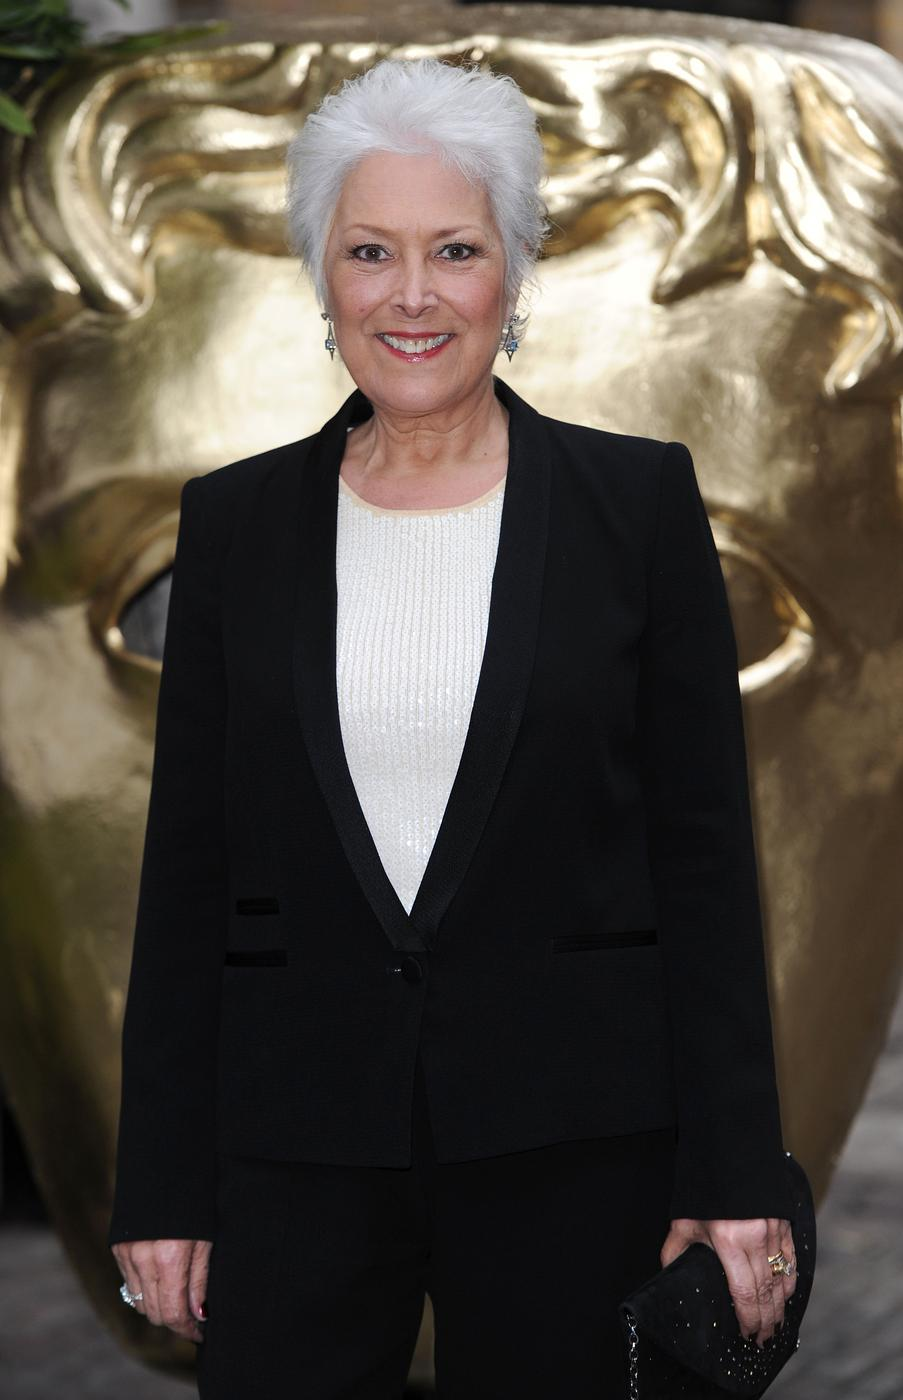 'I'll spend one more Christmas with my family': Lynda Bellingham reveals her cancer is terminal